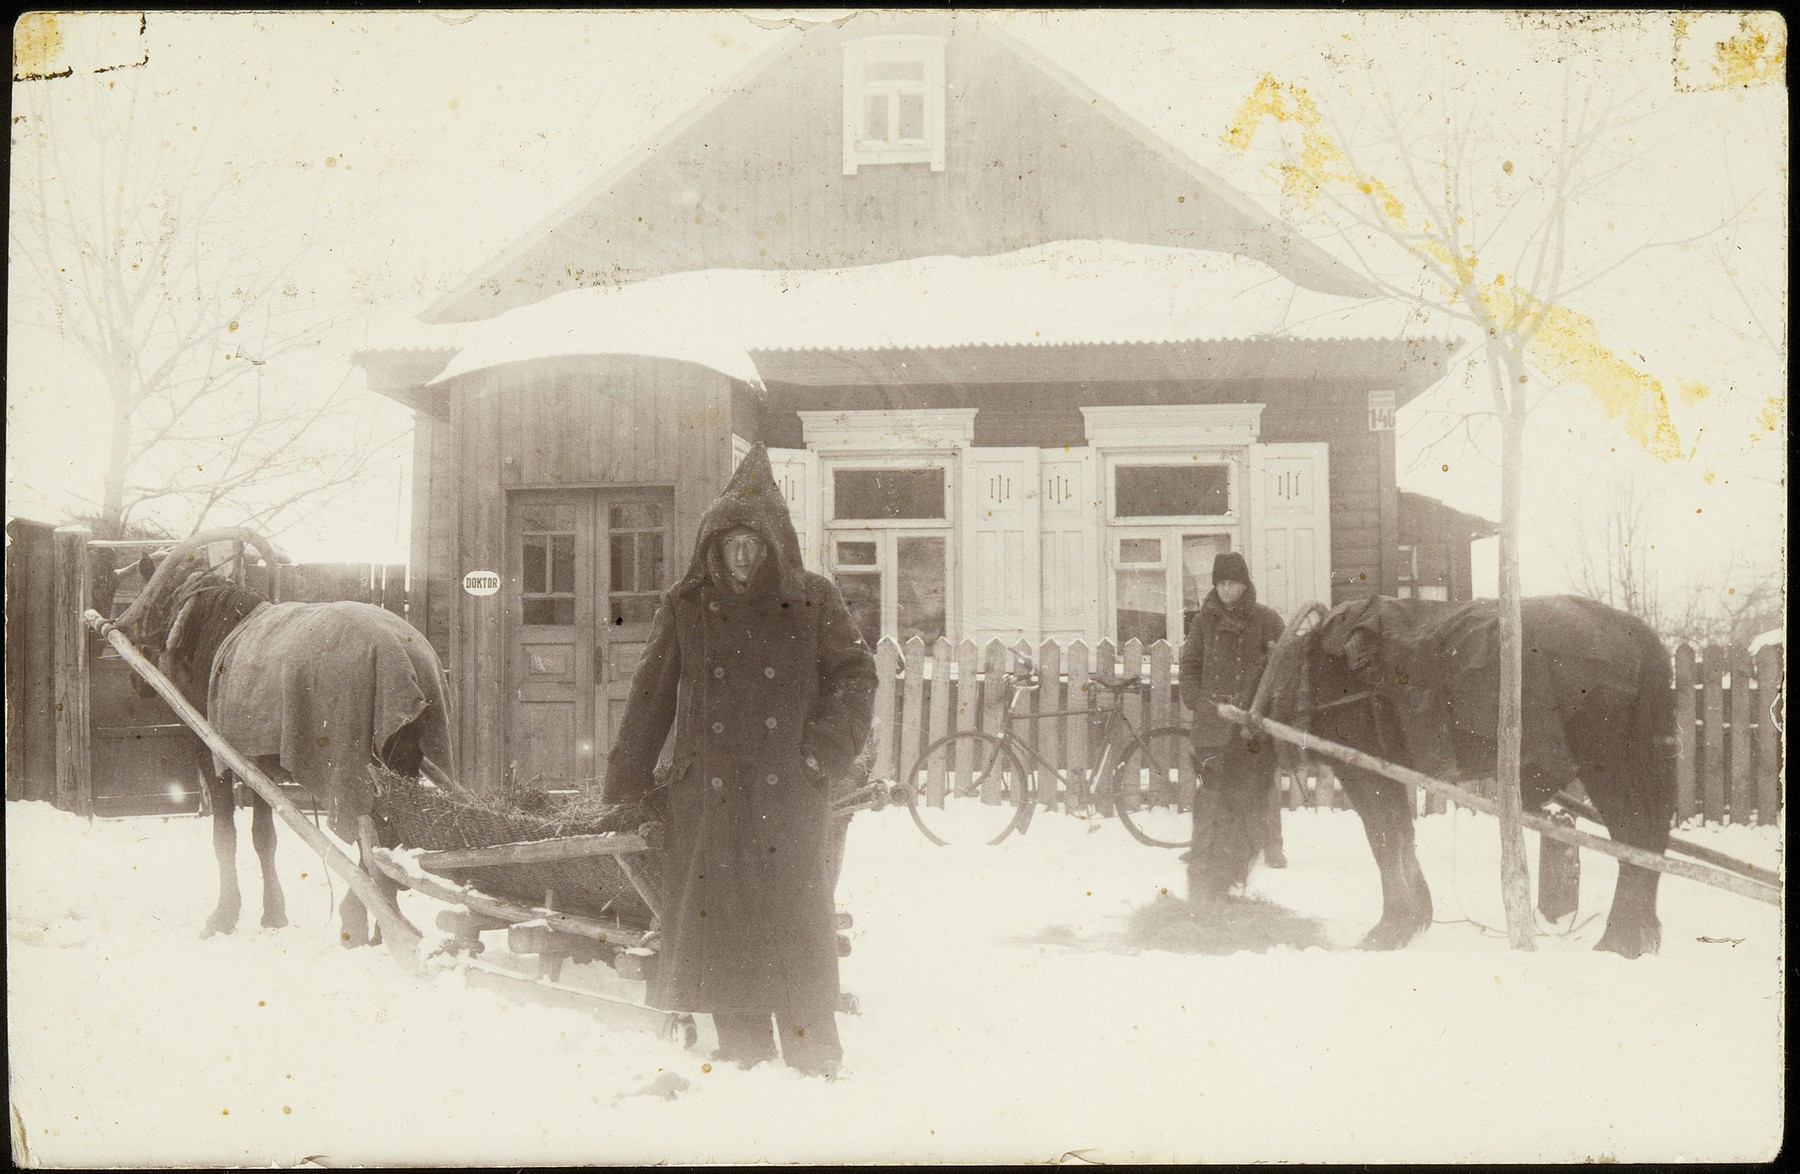 Two men stand by their horses and carts during a snow storm in Eisiskes.